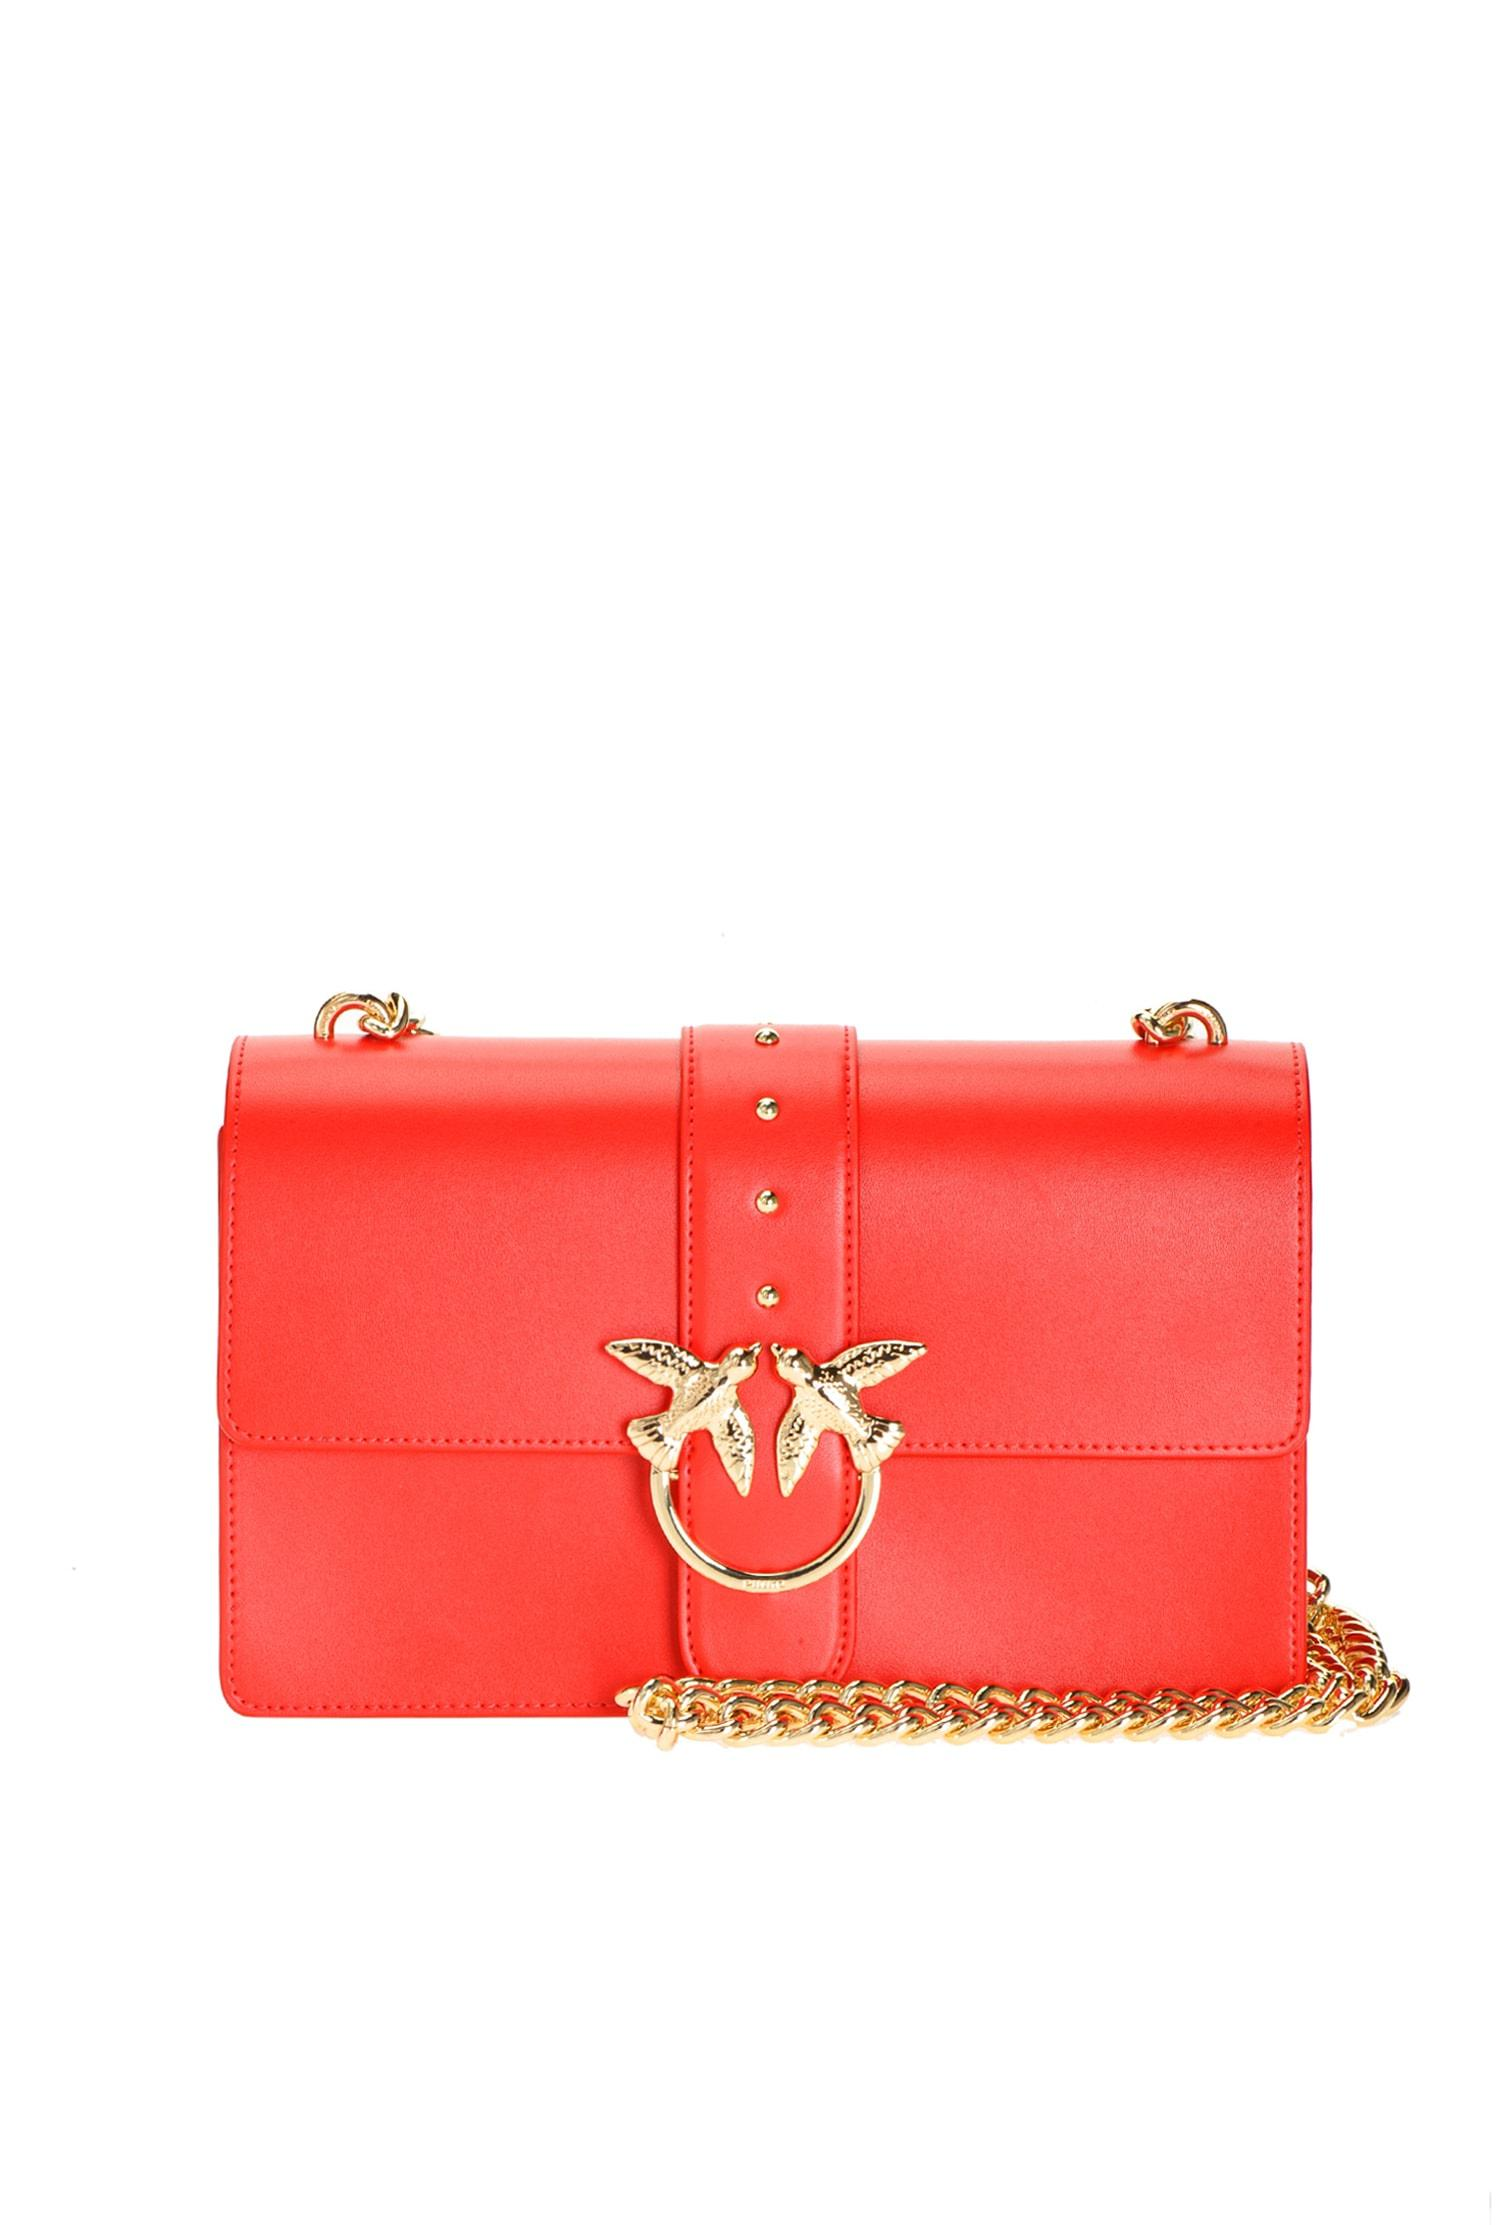 Love bag in pelle rossa Pinko.